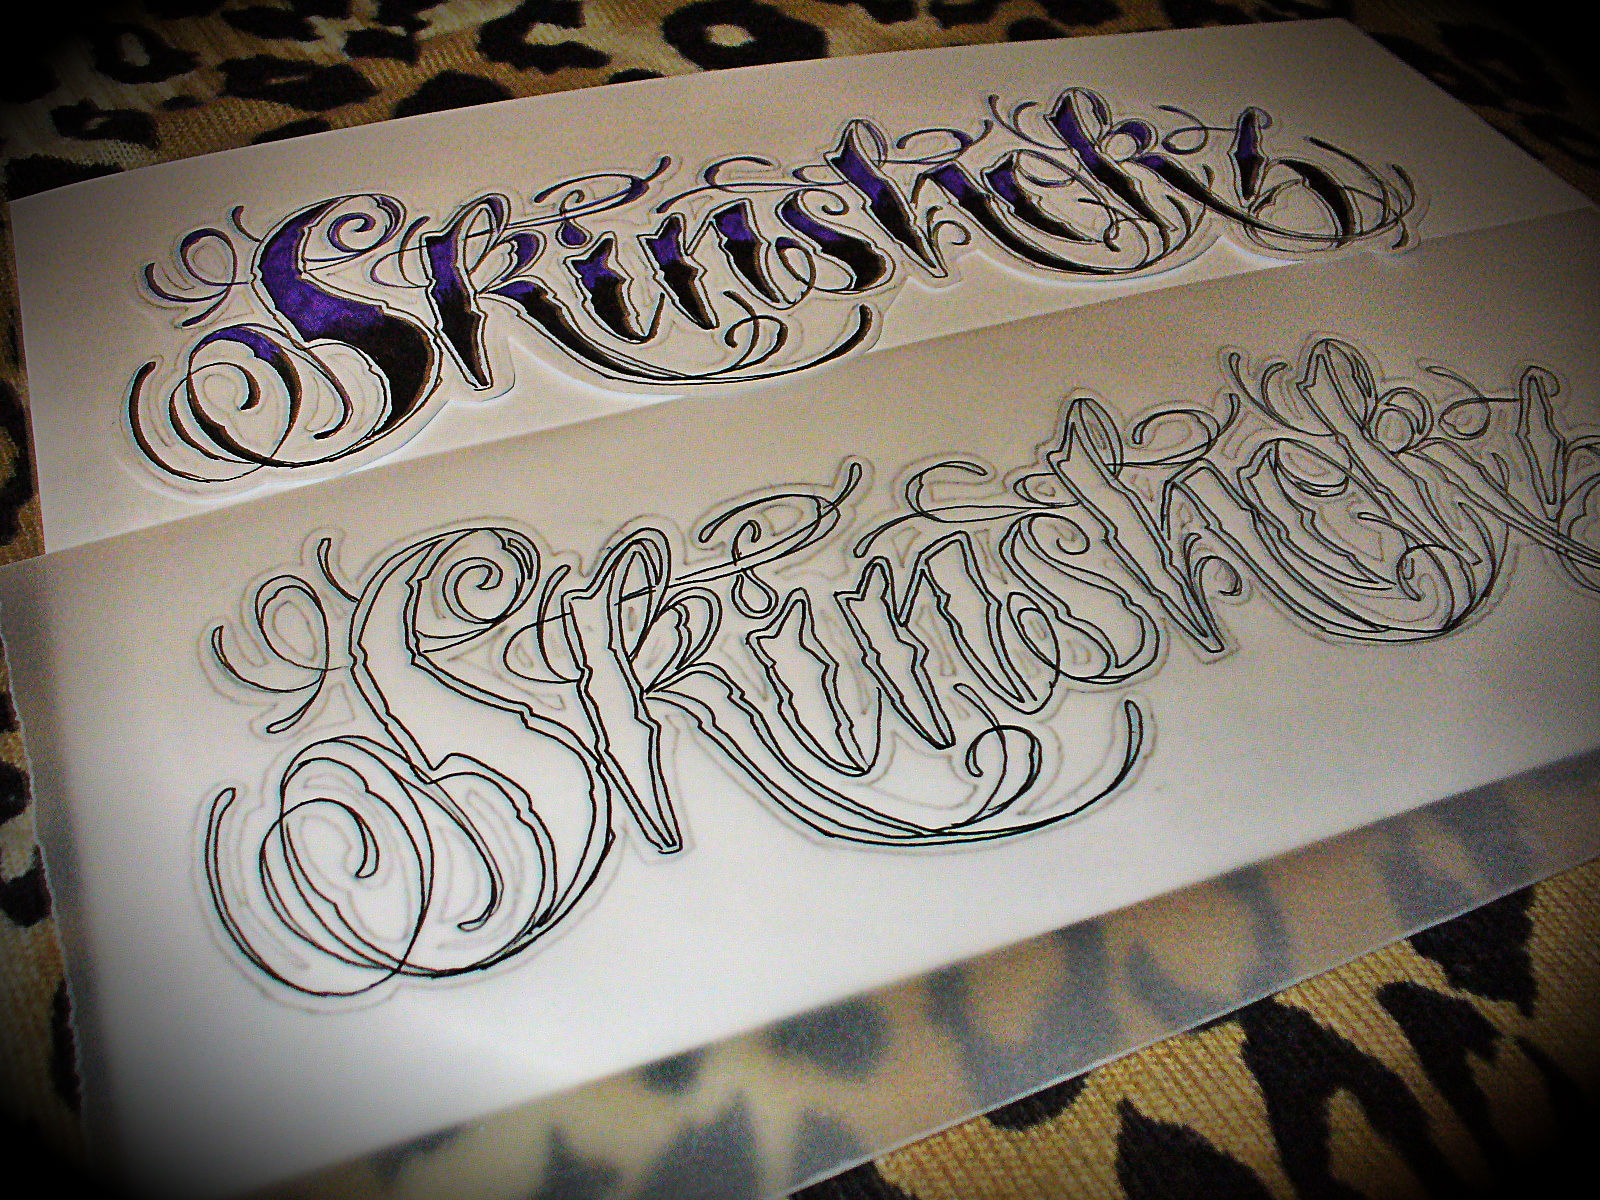 Tattoo Fonts: LizVengeance Art: Skinshokz Tattoo Script